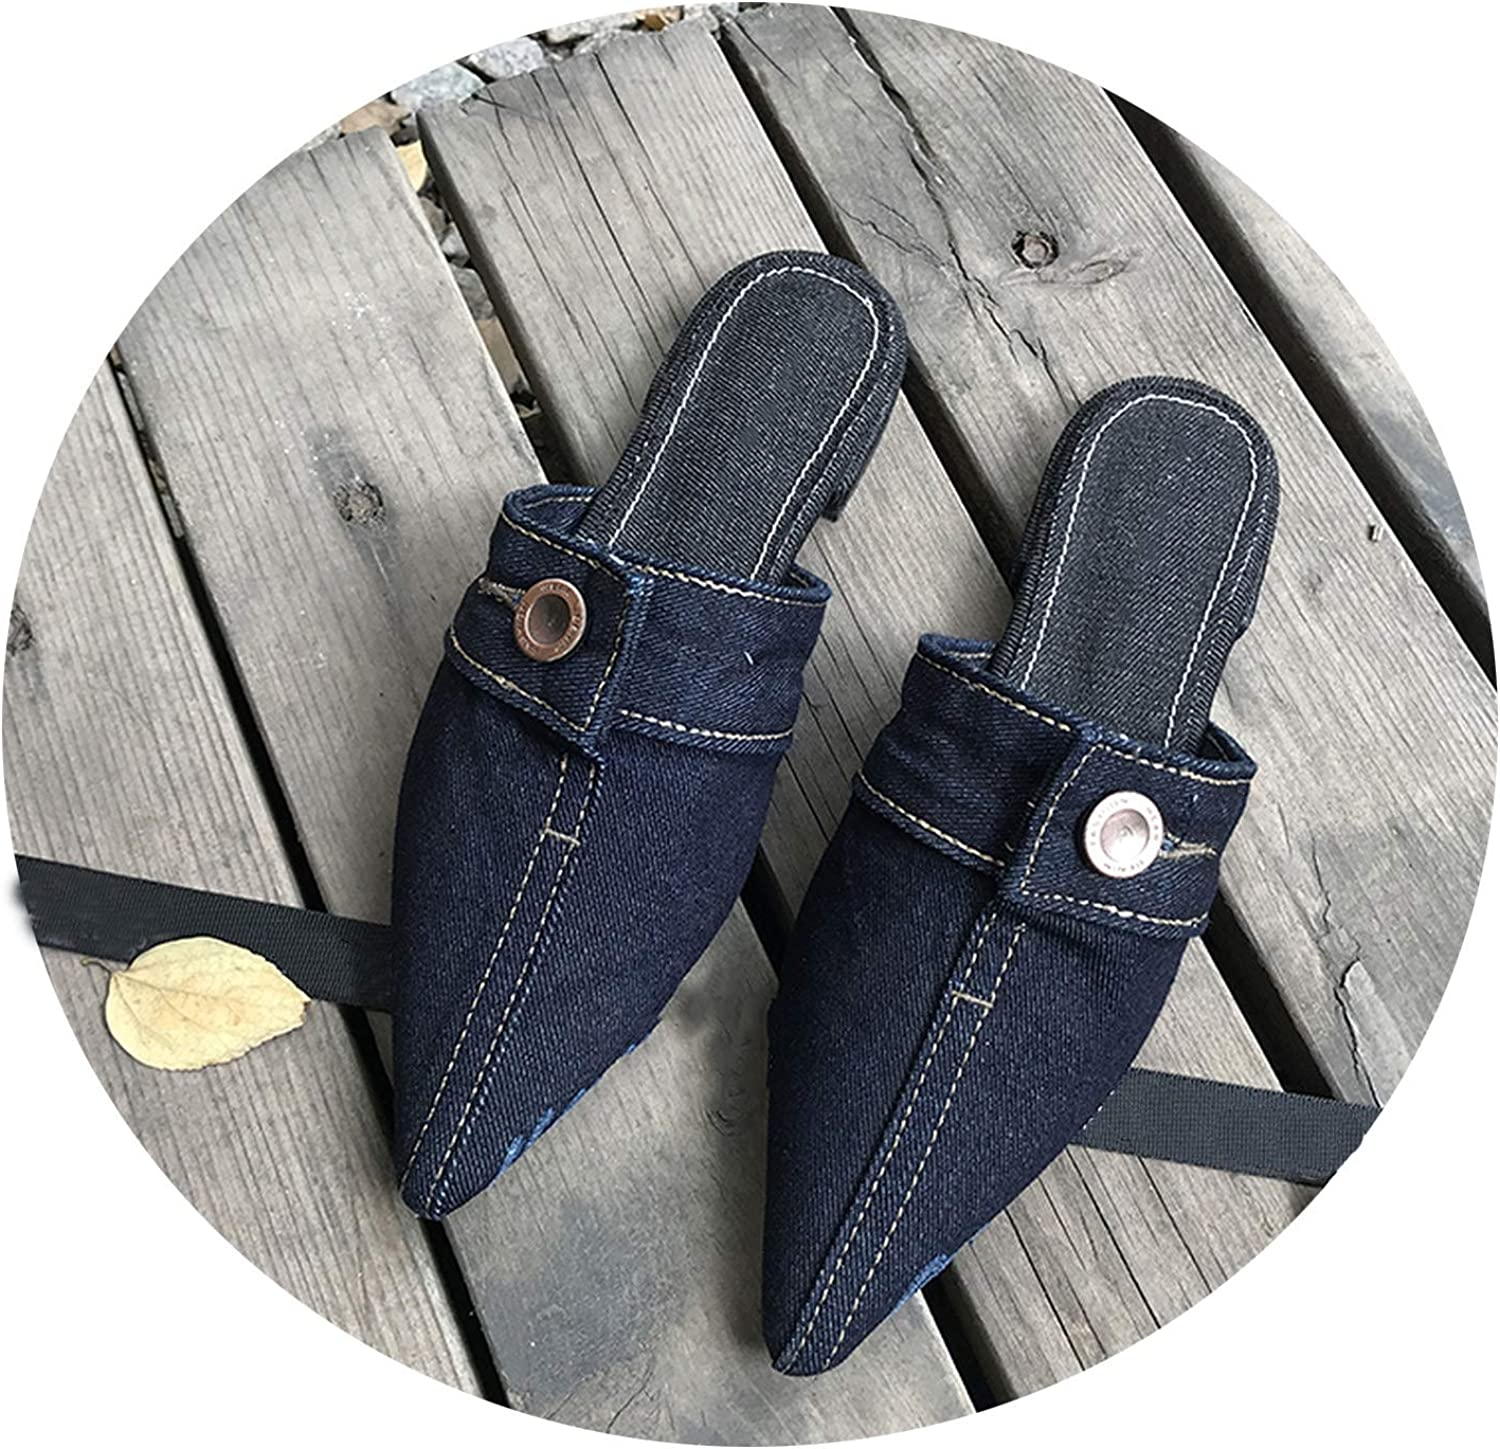 Women Pointed Toe shoes Flats Jeans Slippers Female Slides Designer Slippers,Navy bluee,35